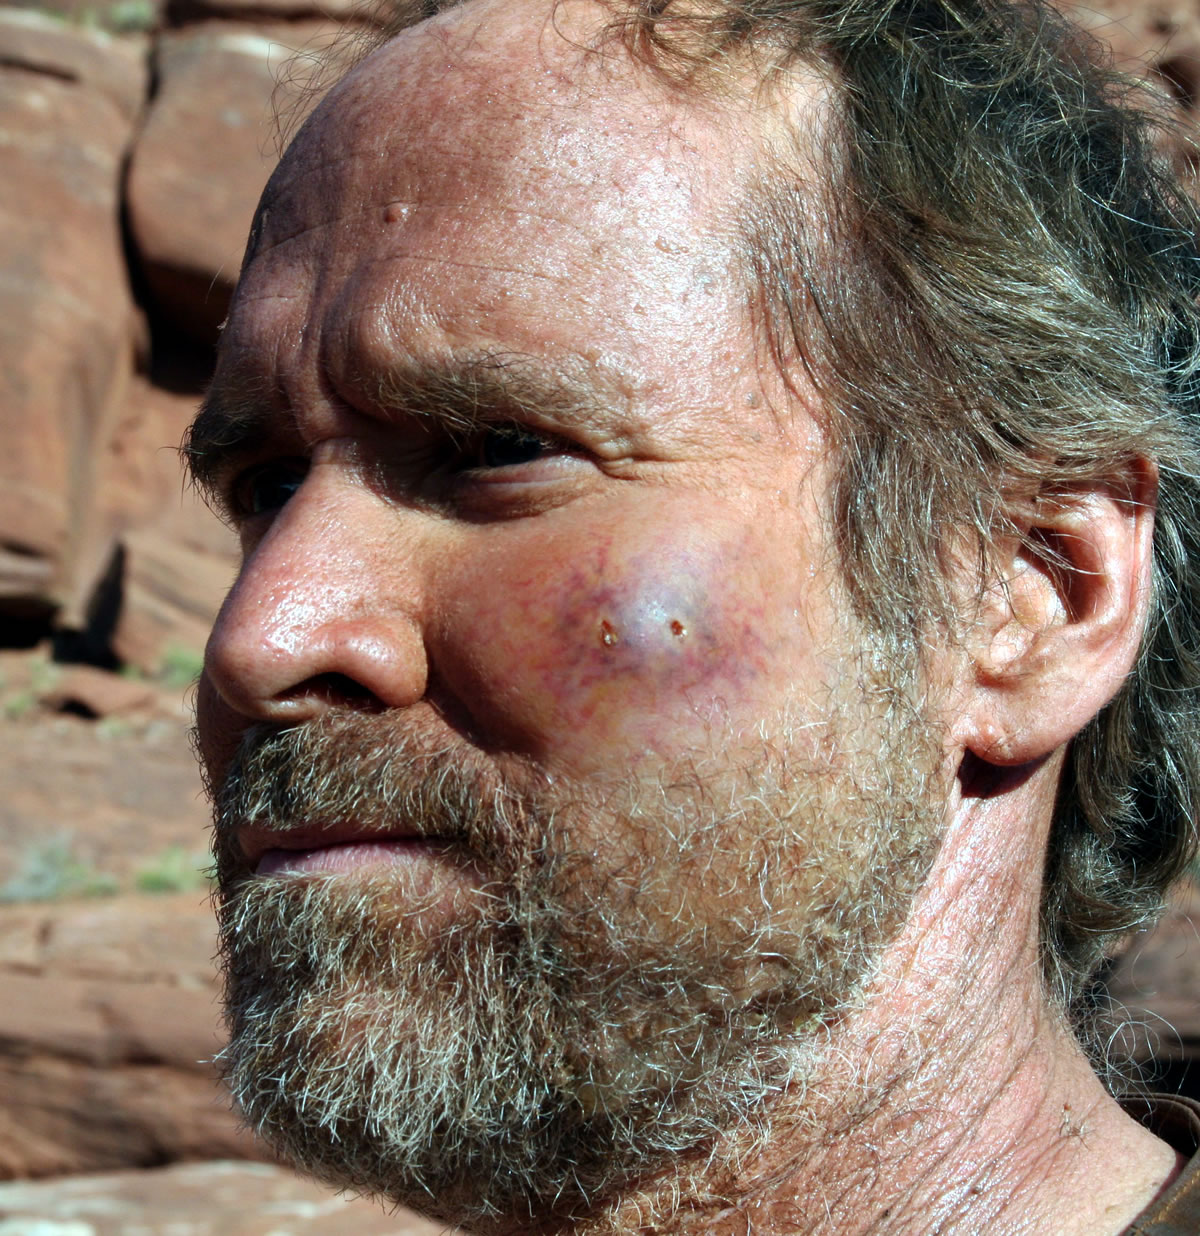 Swollen snake bite wound for the film 'The Canyon'